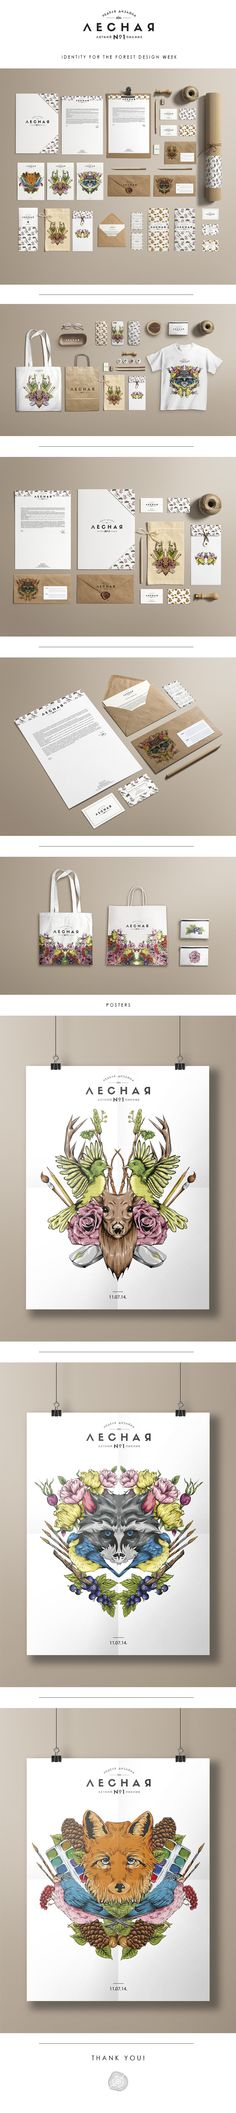 Botanical / Forest Design Week on Behance